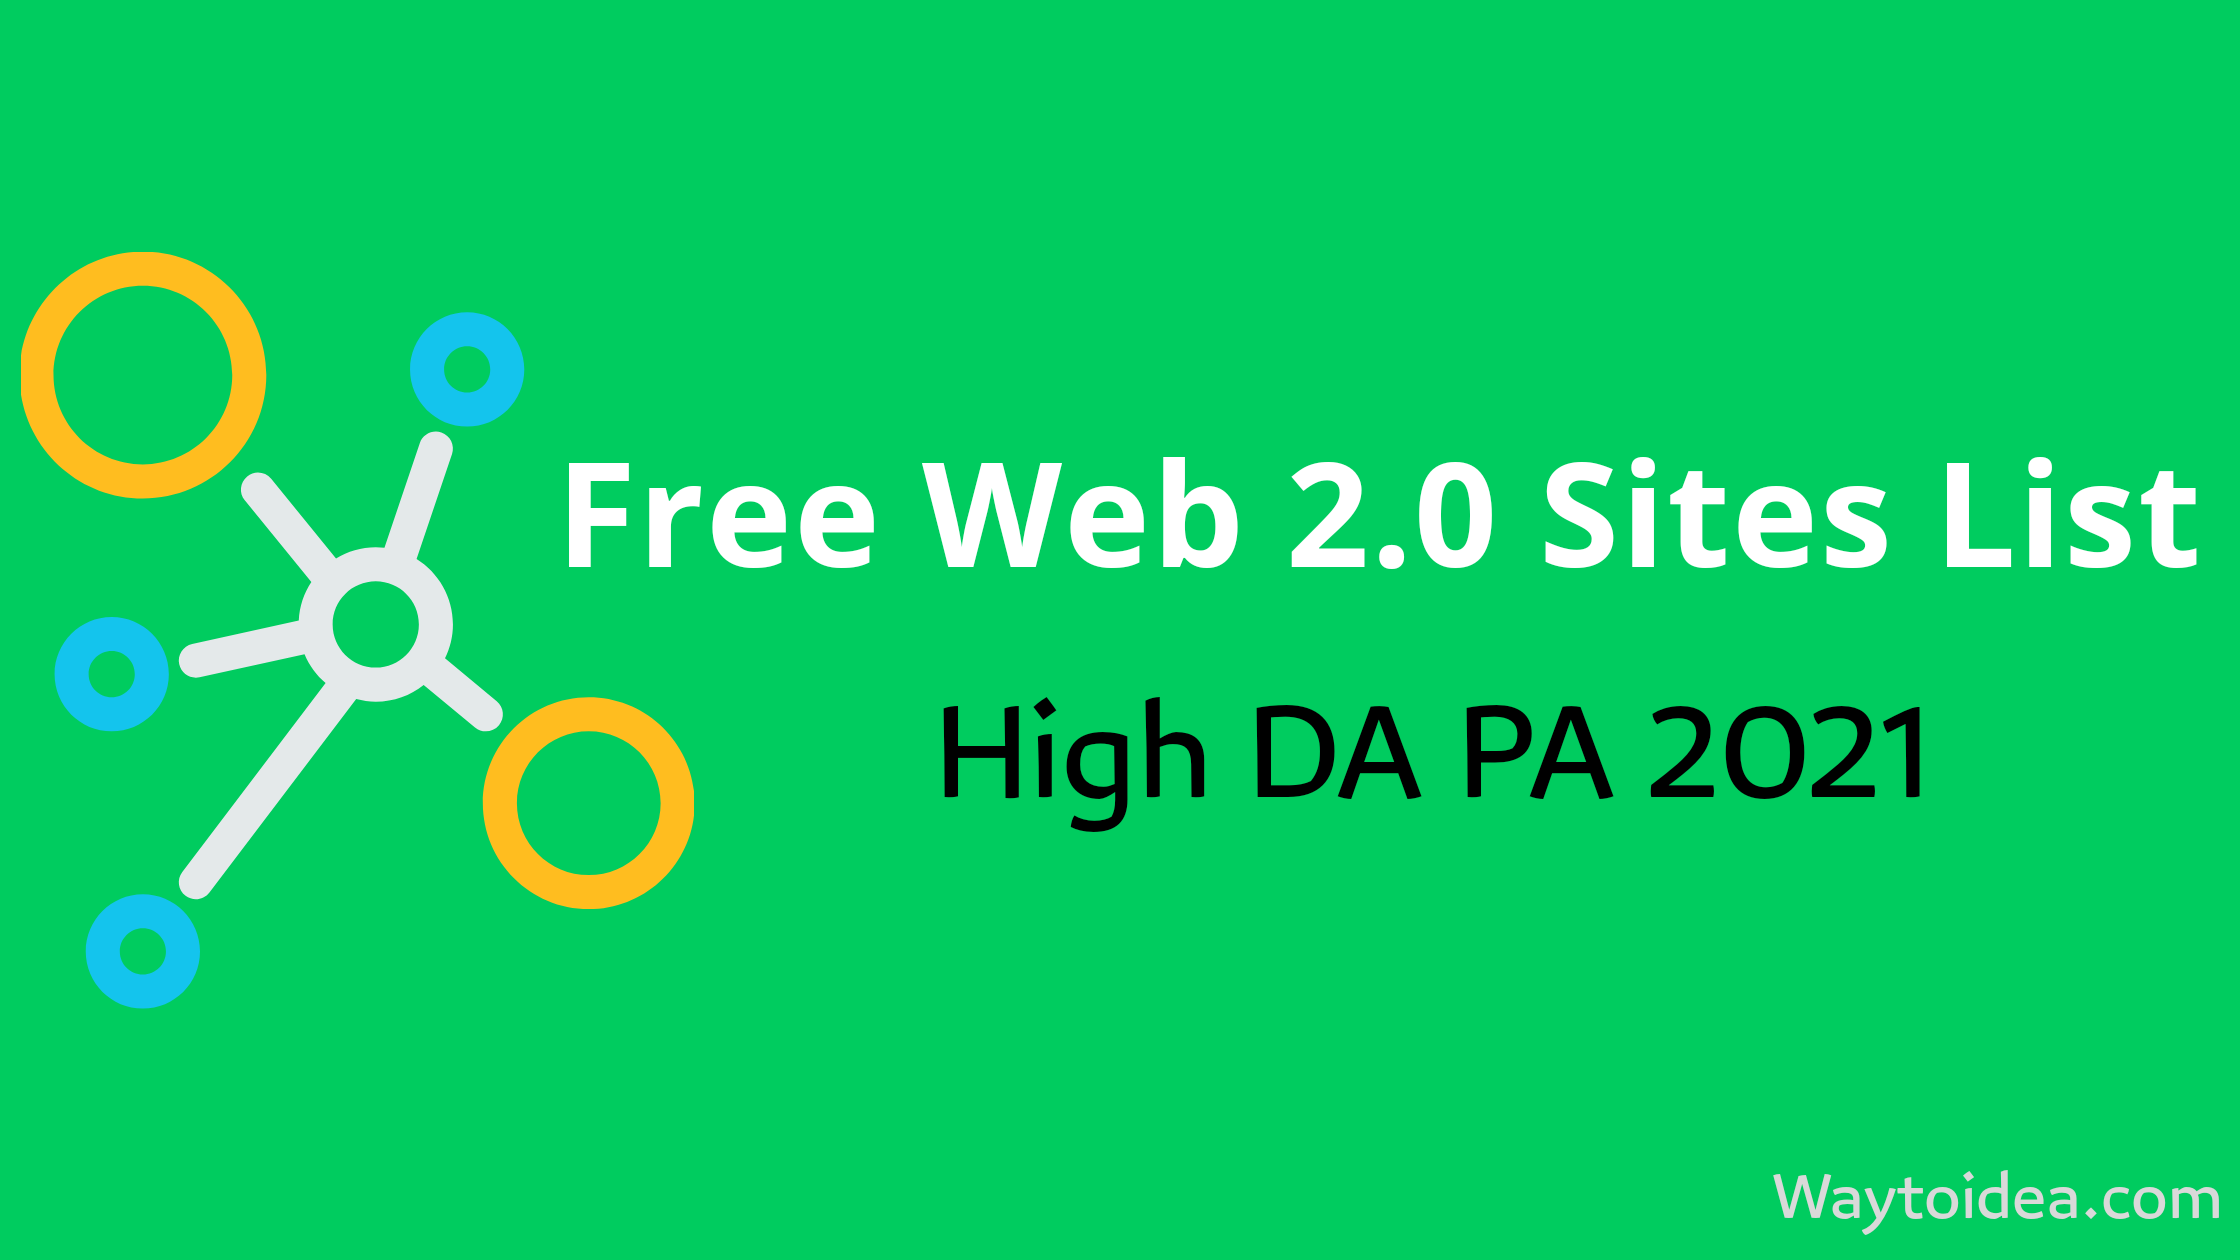 Free High DA PA Web 2.0 Sites List